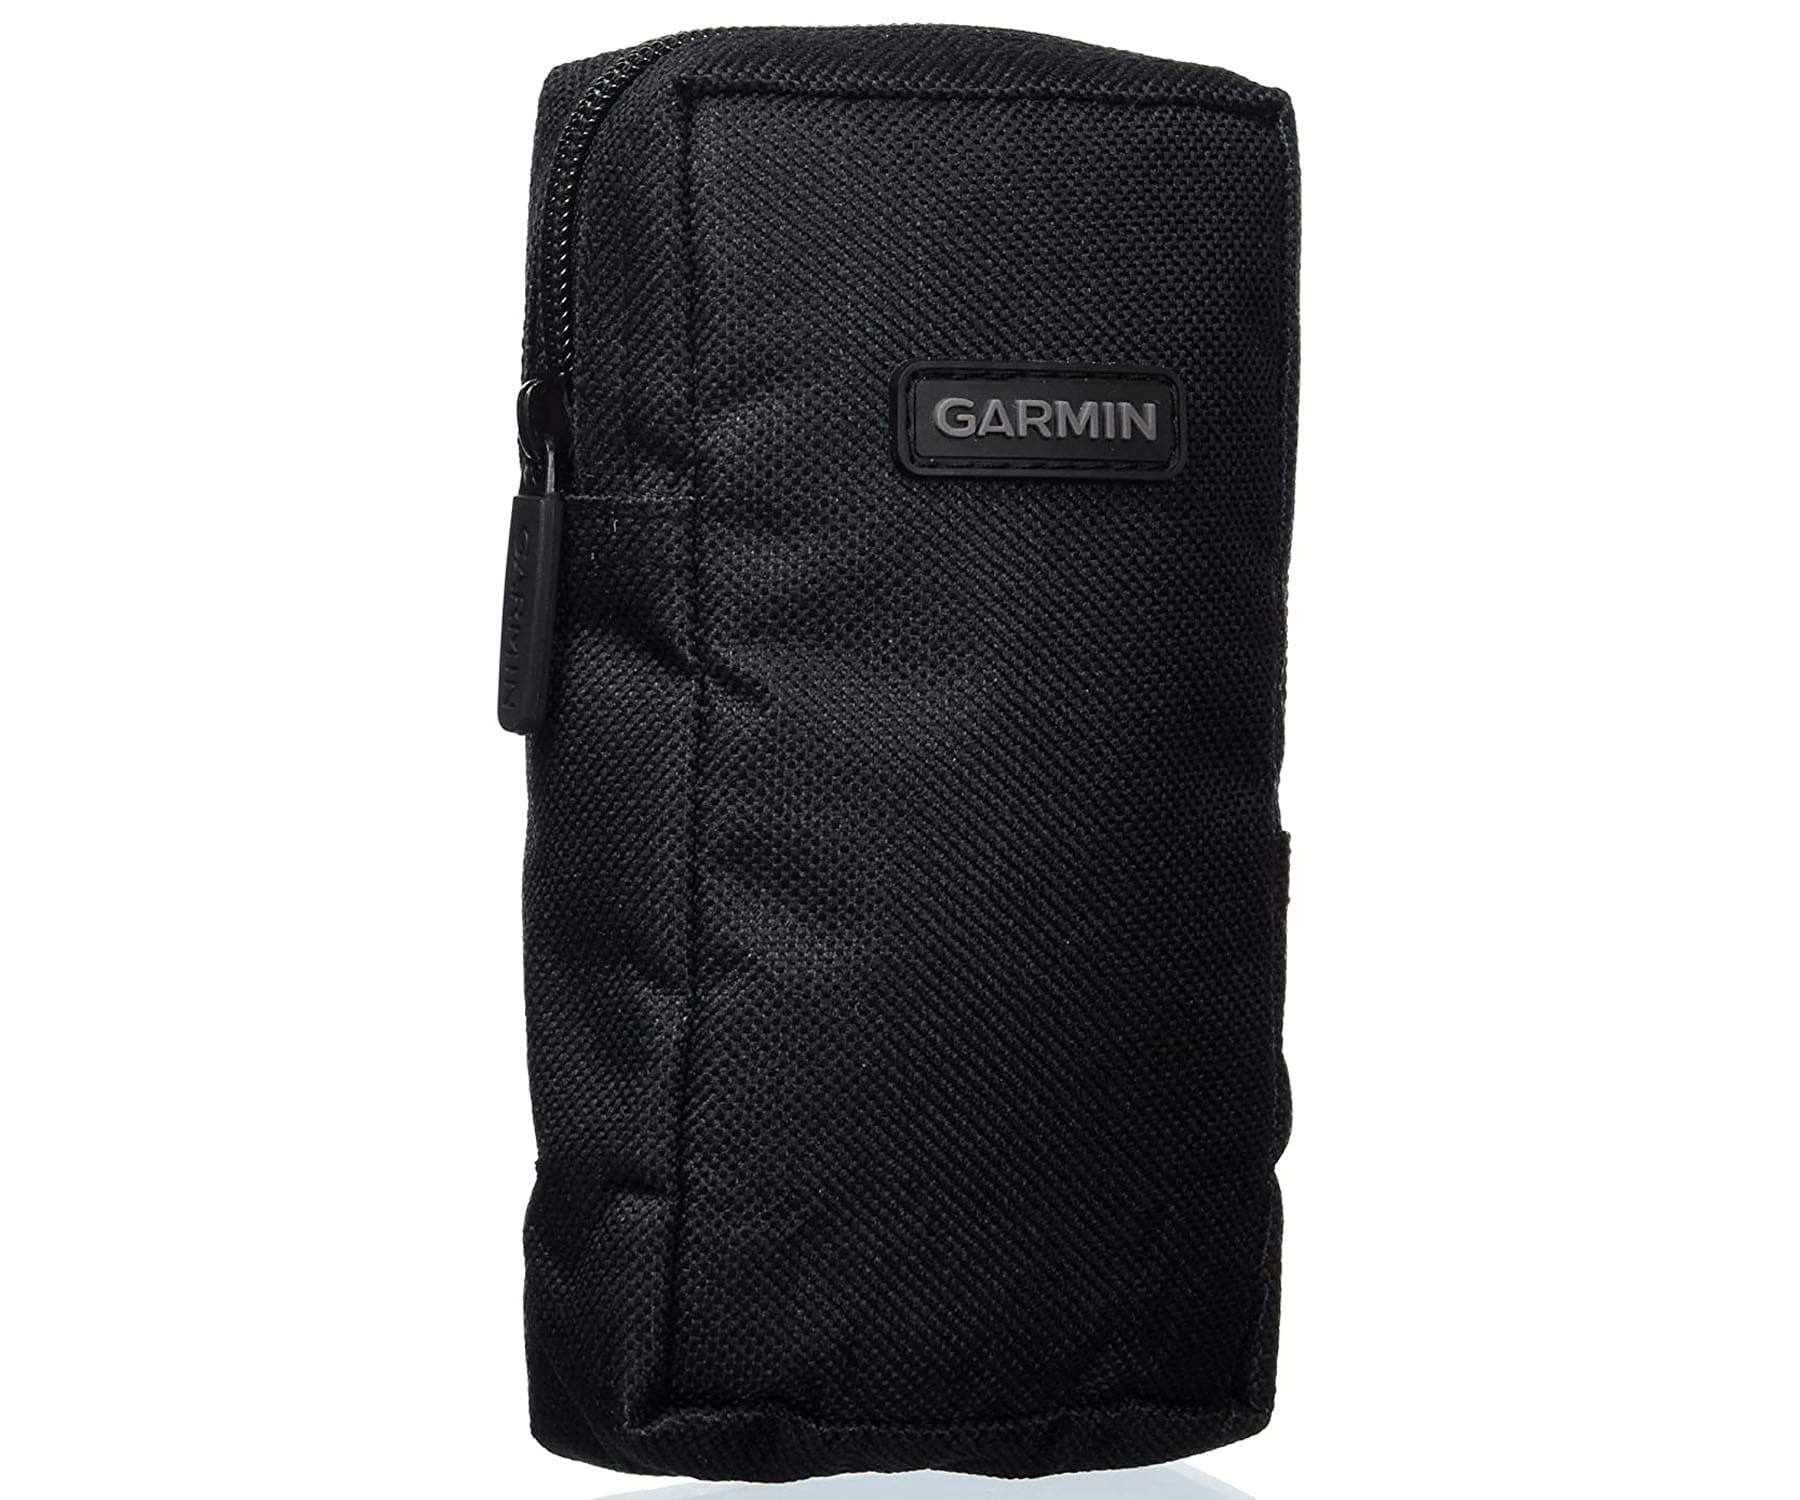 GARMIN ACCESS CARRY CASE UNIVERSAL NEGRO FUNDA BLANDA PARA GPS